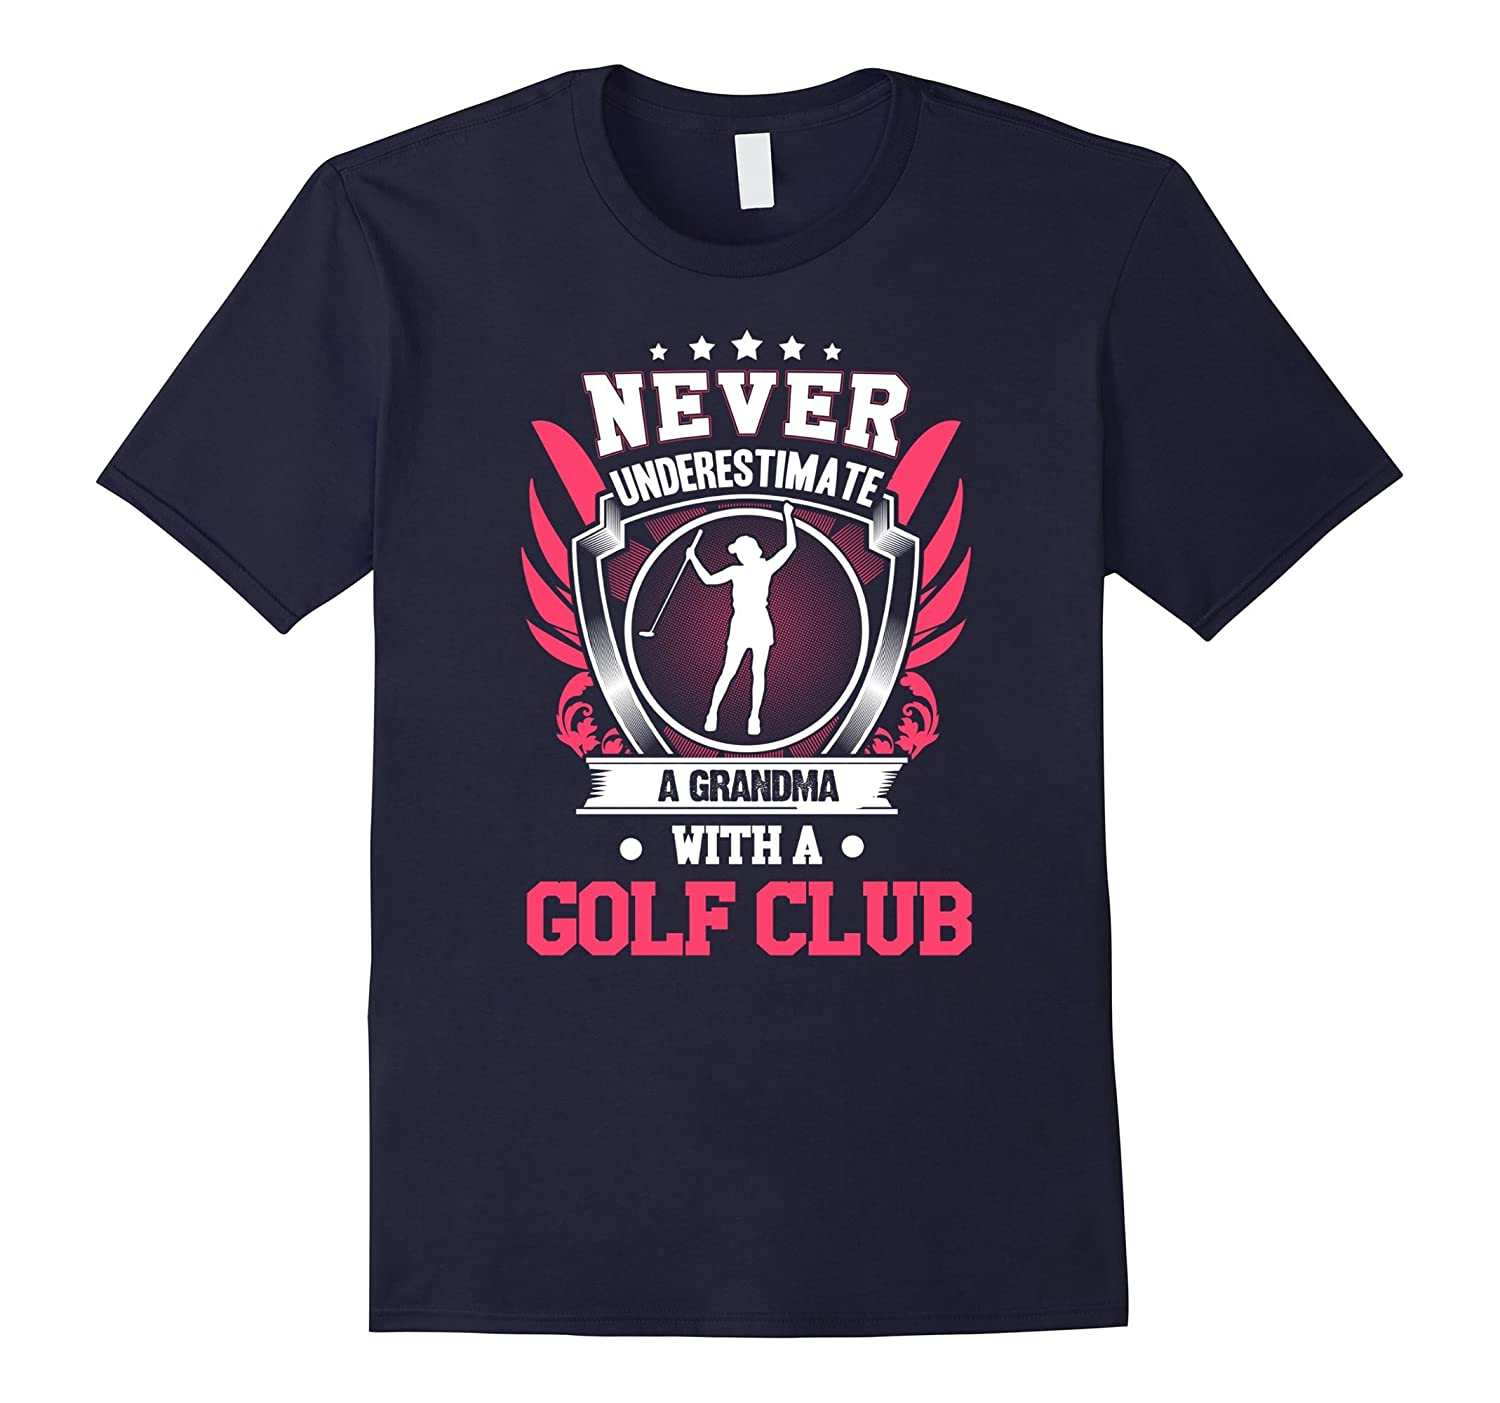 Funny Never Underestimate a Grandma with a Golf Club T-shirt